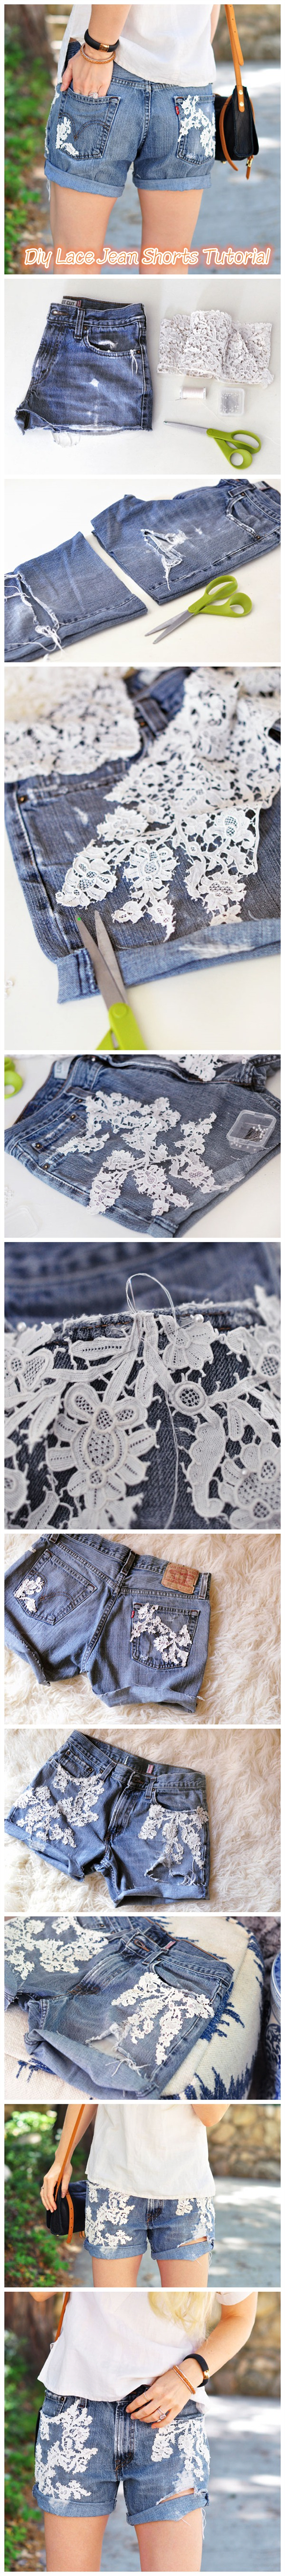 Diy Lace Jean Shorts Tutorial